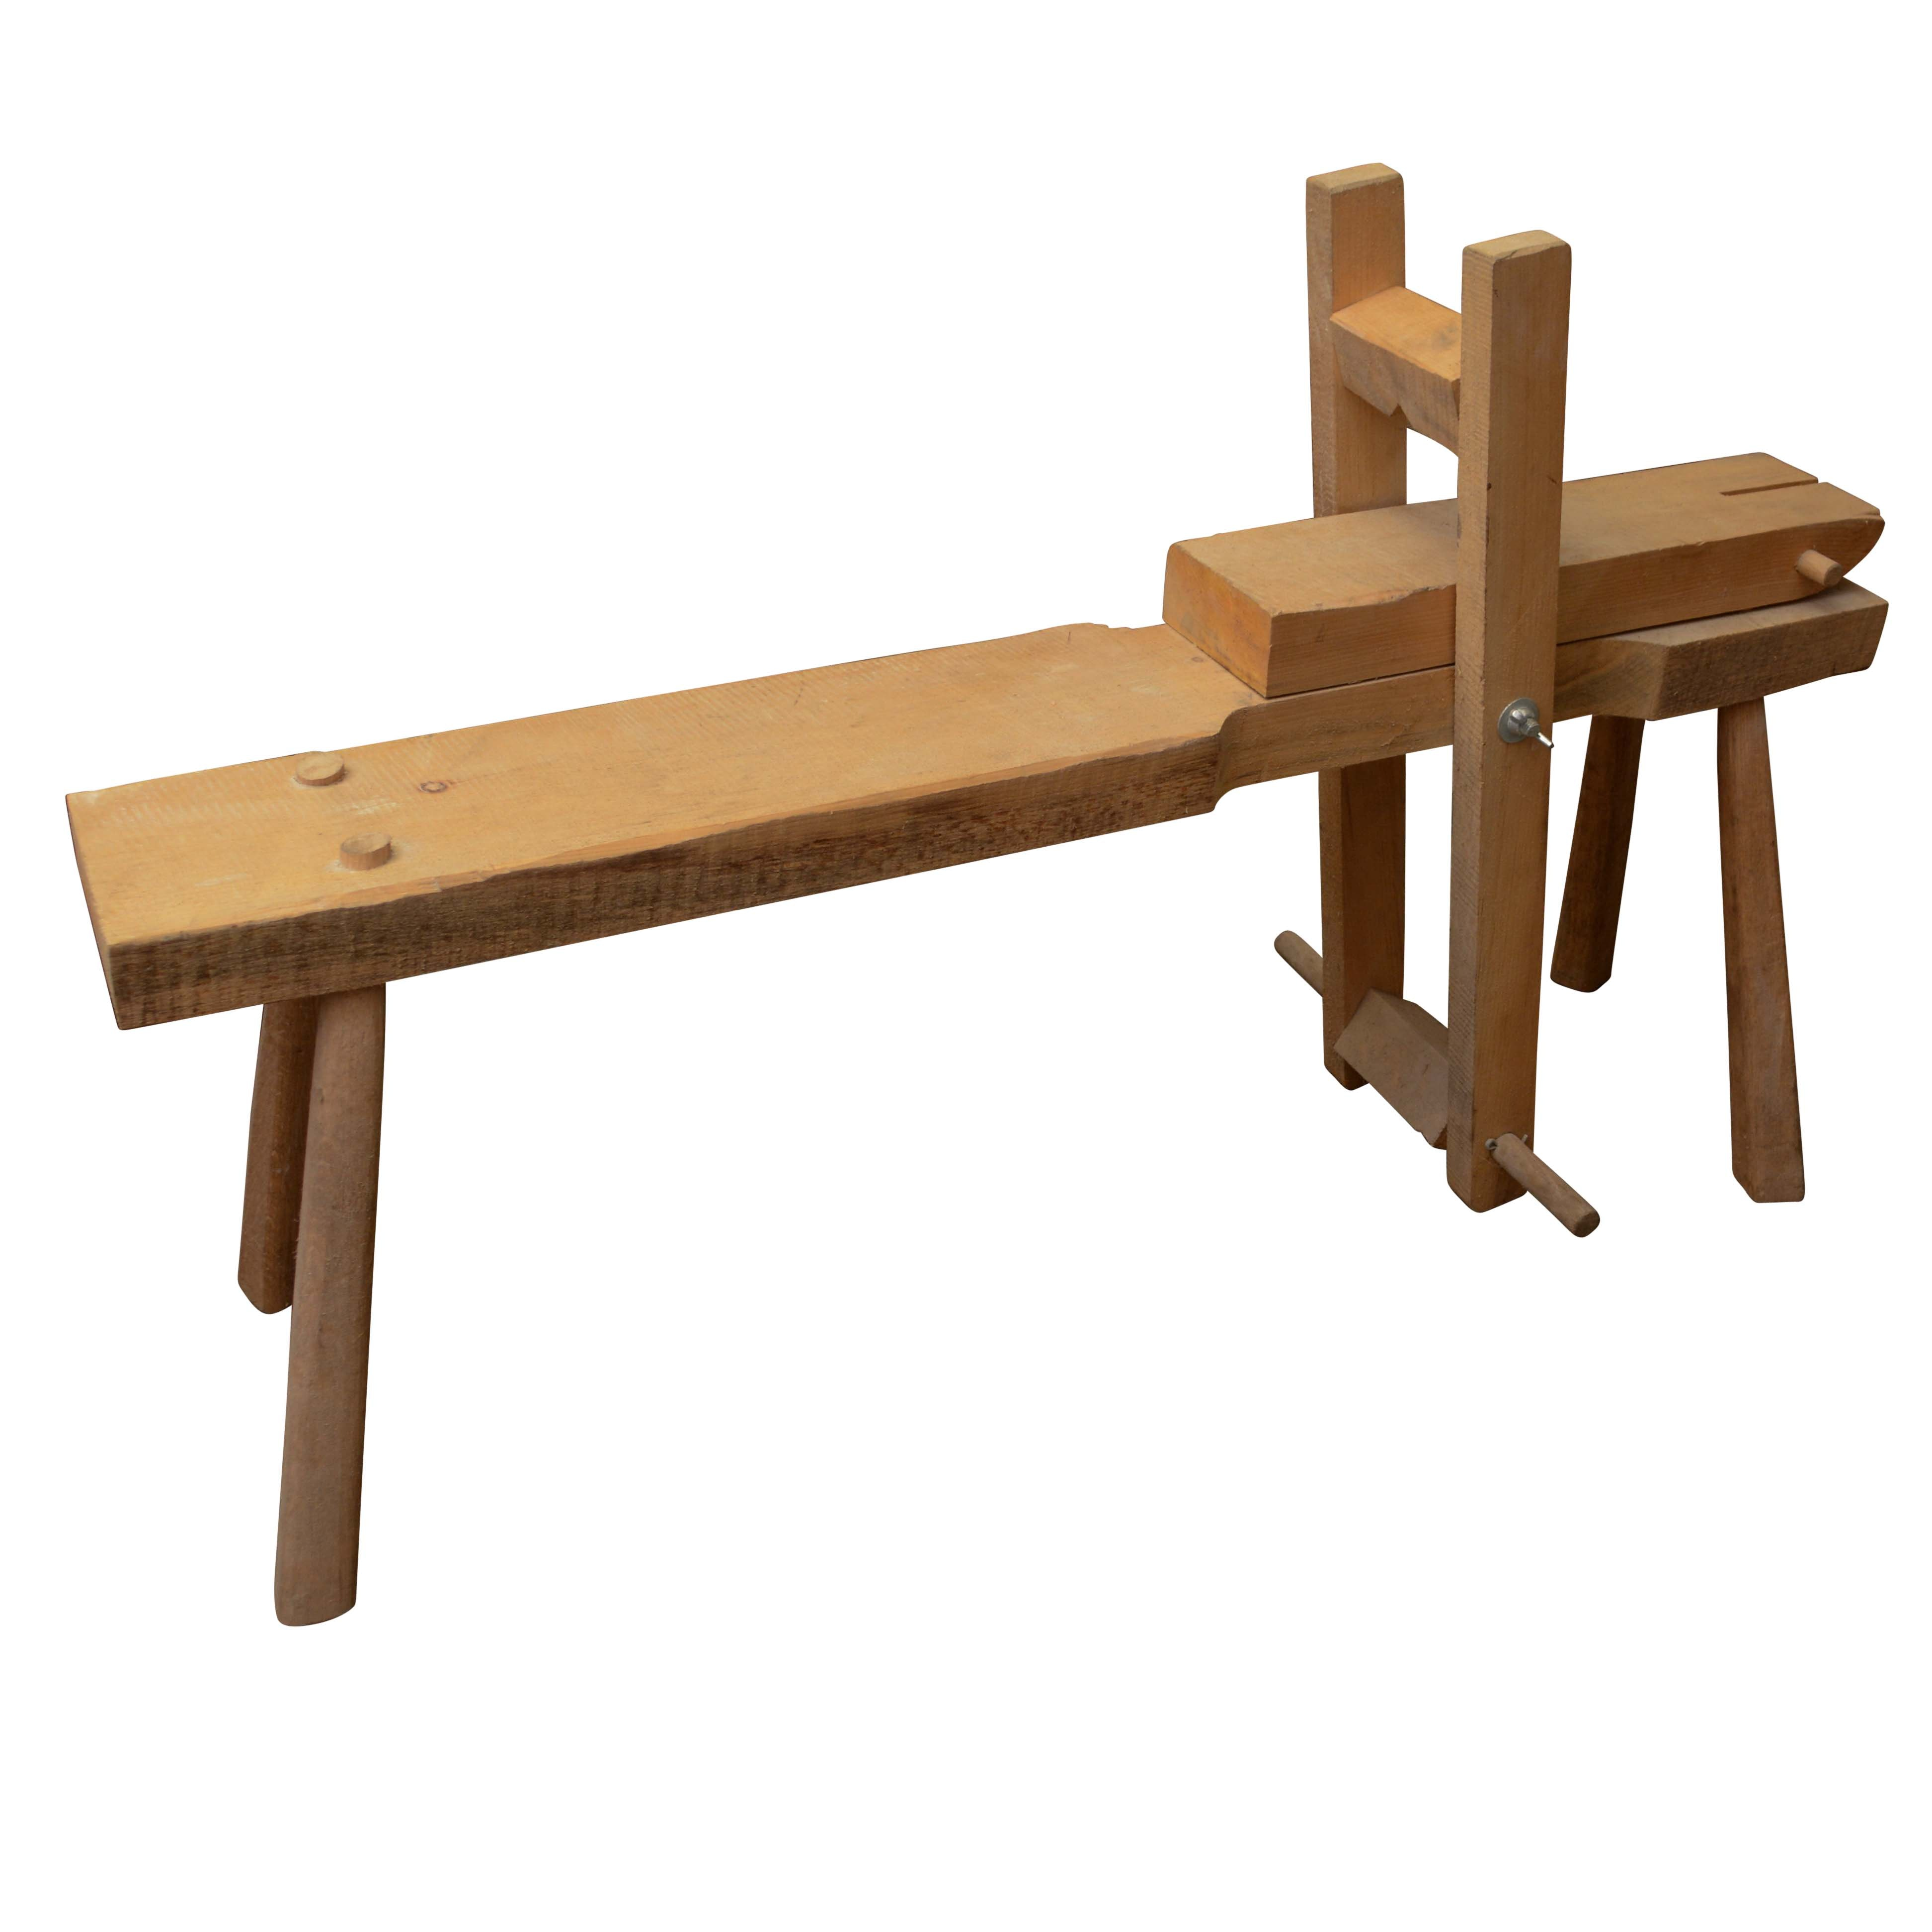 Handcrafted Wooden Carpentry Bench